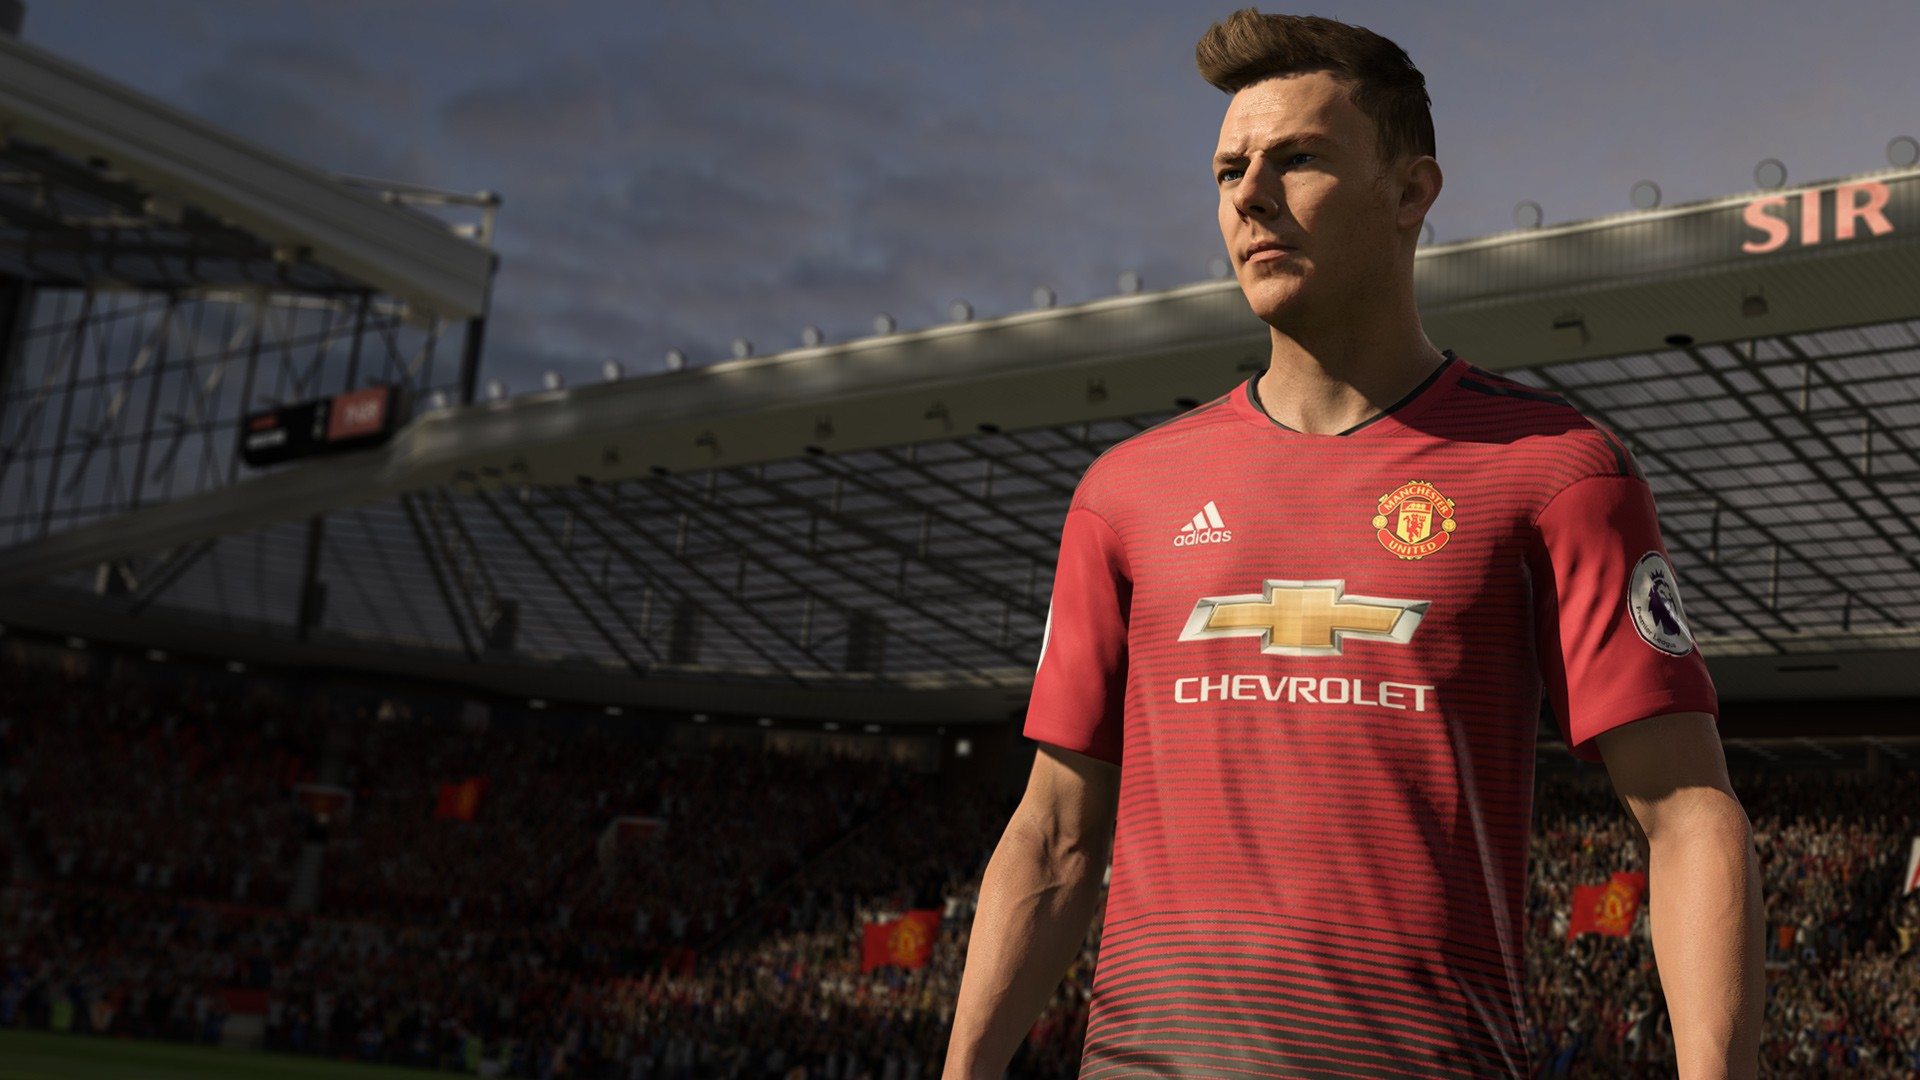 fifa 19 download pc highly compressed